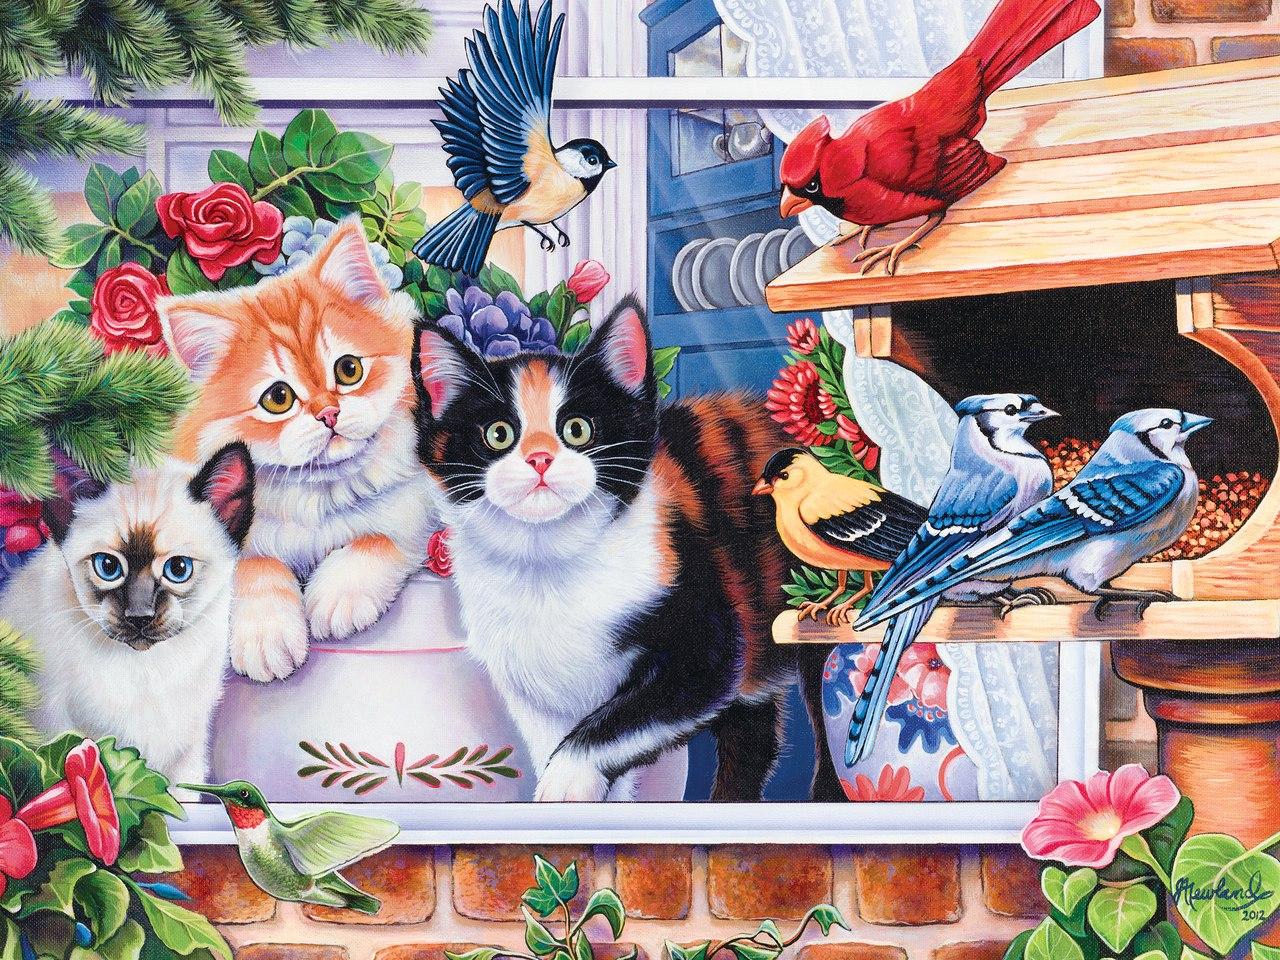 Springtime Wonders - 400pc Jigsaw Puzzle by Masterpieces  			  					NEW